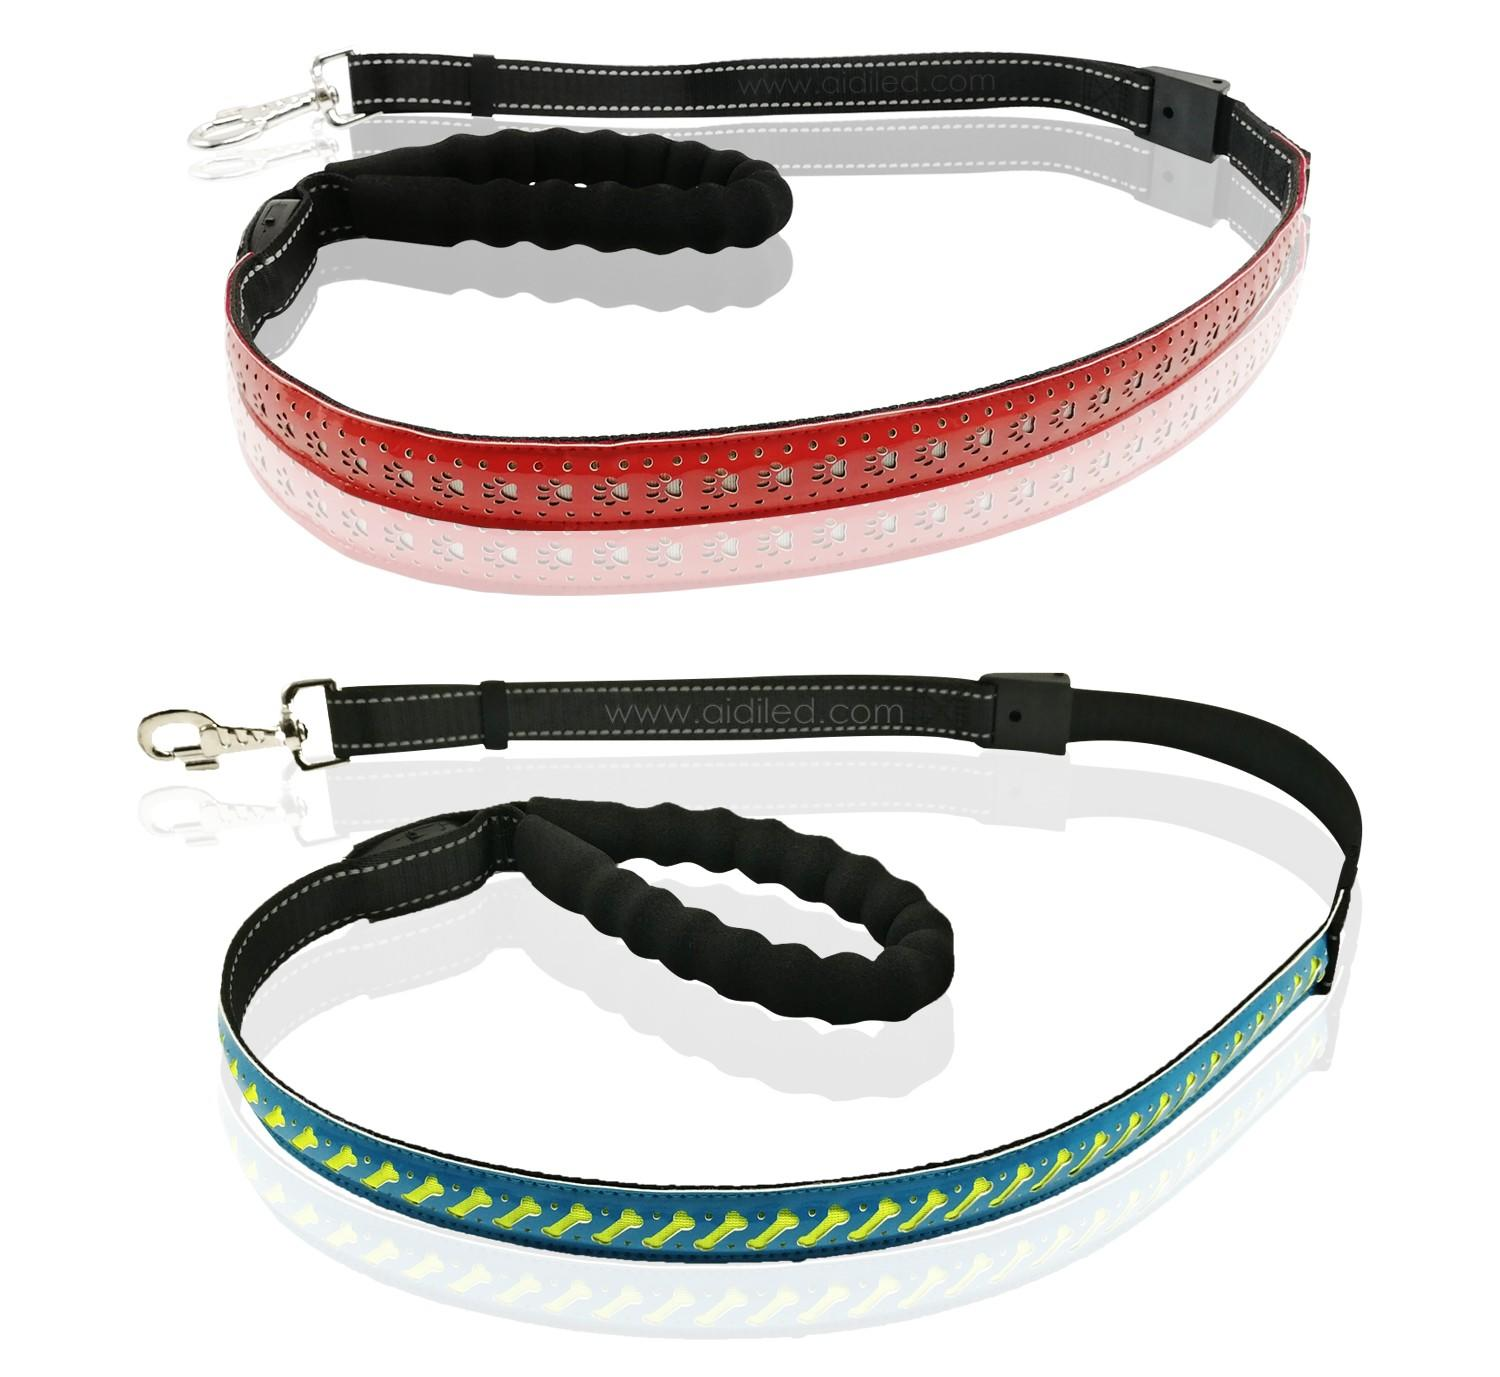 AIDI-High-quality Best Led Dog Leash | Led Pu Leather Dog Leash Aidi-l6-2